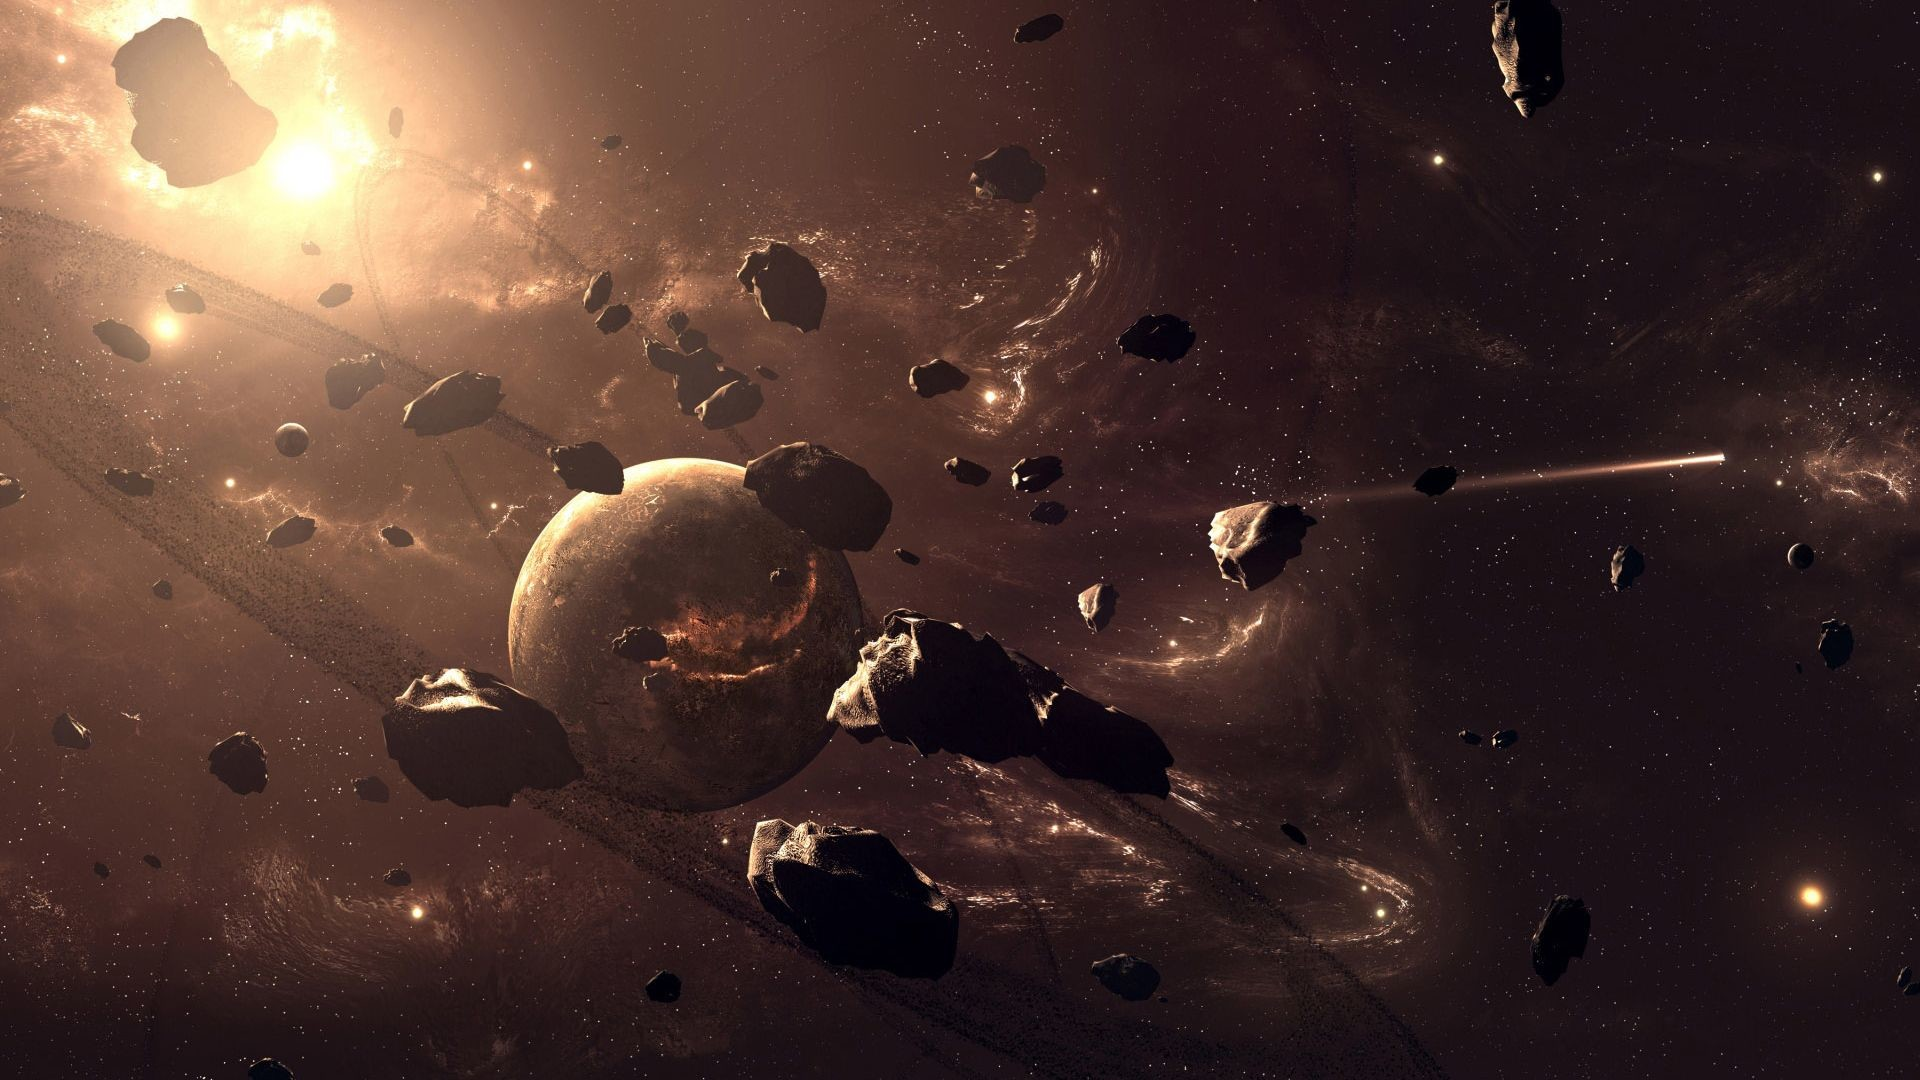 Outer Space Planets HD Wallpaper. « »